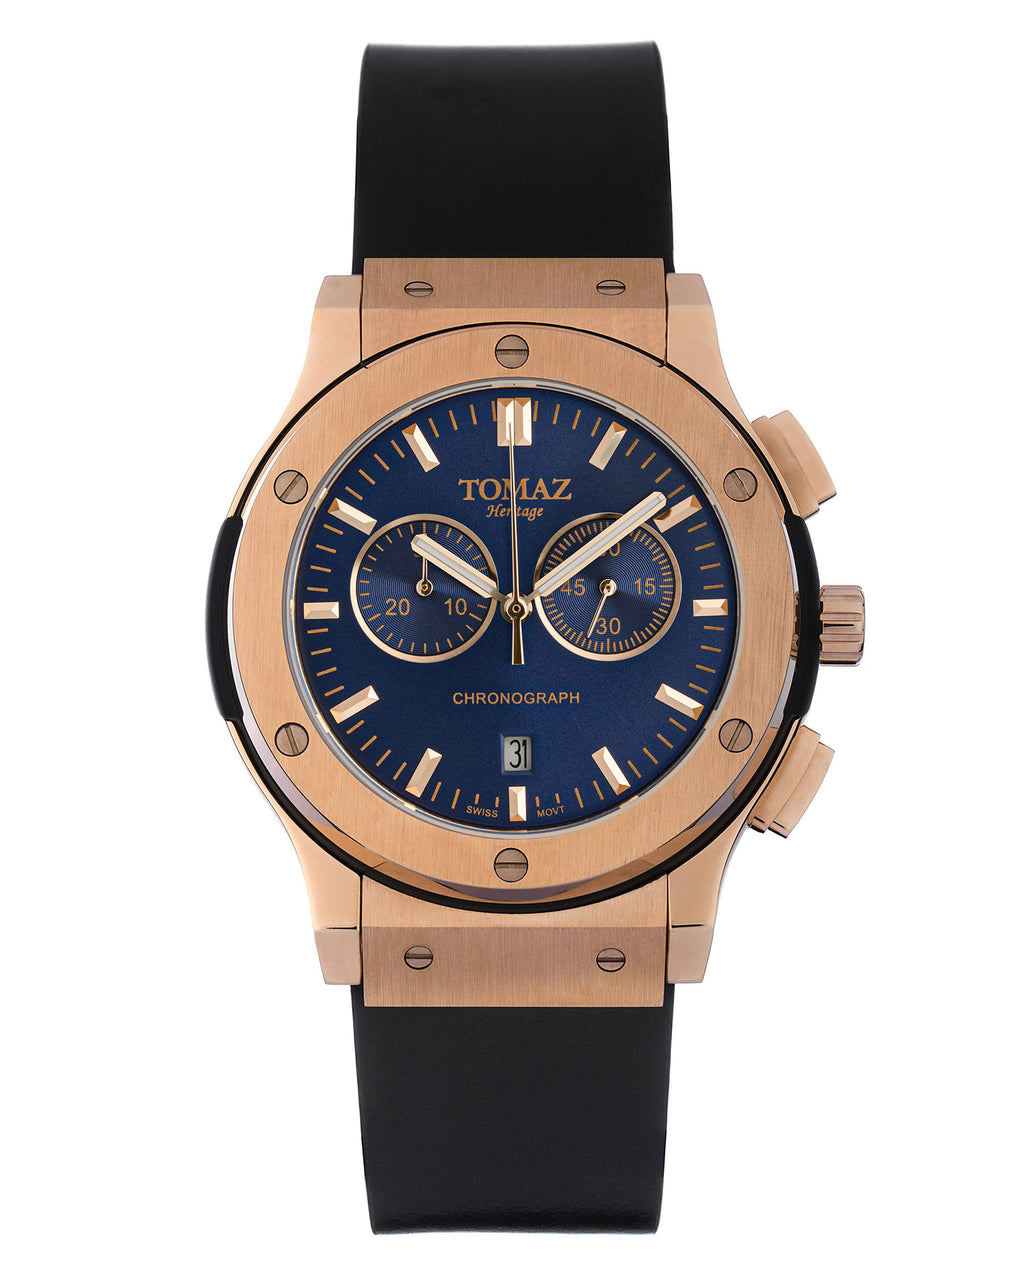 Tomaz Men's Watch TQ008 (Rose Gold/Blue)